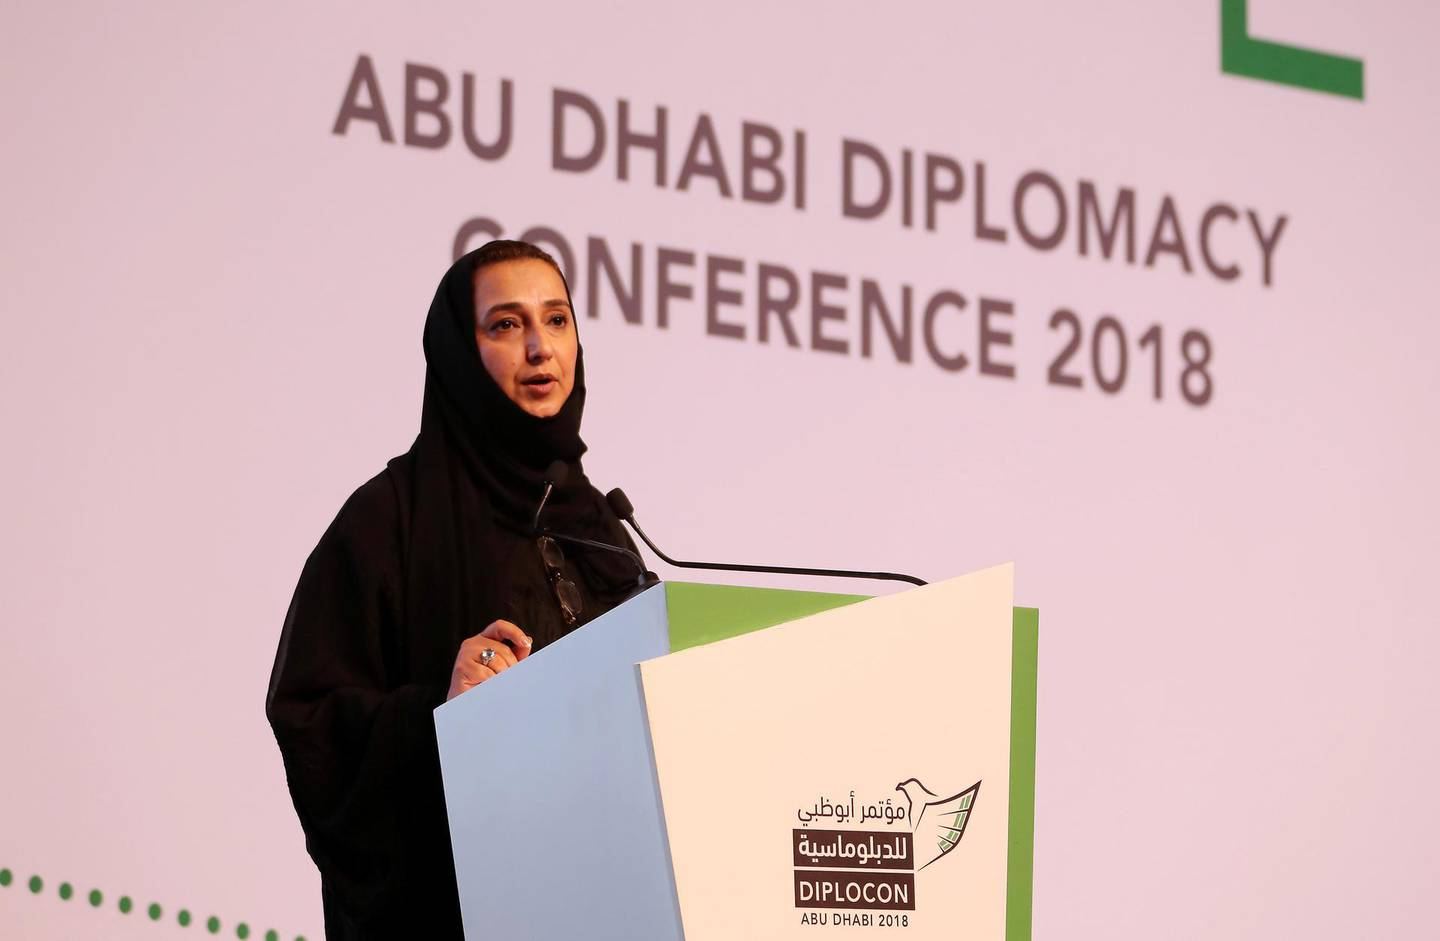 ABU DHABI , UNITED ARAB EMIRATES , November 14  – 2018 :- Dr. Nawal Al-Hosany , Permanent Representative of the UAE to the International Renewable Energy Agency (IRENA) and Deputy Director General of the Emirates Diplomatic Academy speaking at the Diplocon , Abu Dhabi Diplomacy Conference 2018 held at the St. Regis Saadiyat Island Resort in Abu Dhabi. ( Pawan Singh / The National ) For News. Story by Gill Duncan / Daniel Sanderson